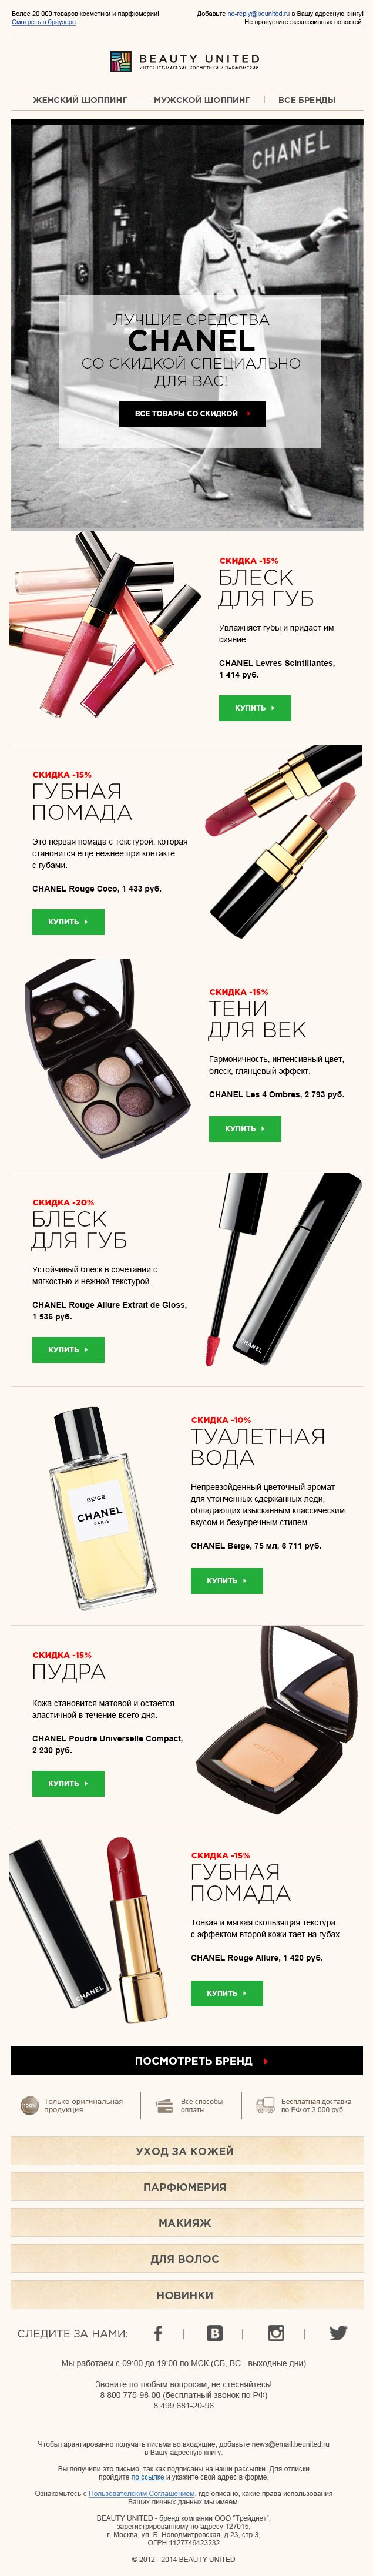 Верстка и отправка писем Beauty United. #bu #beautyunited #emailsoldiers #emailmarketing #email